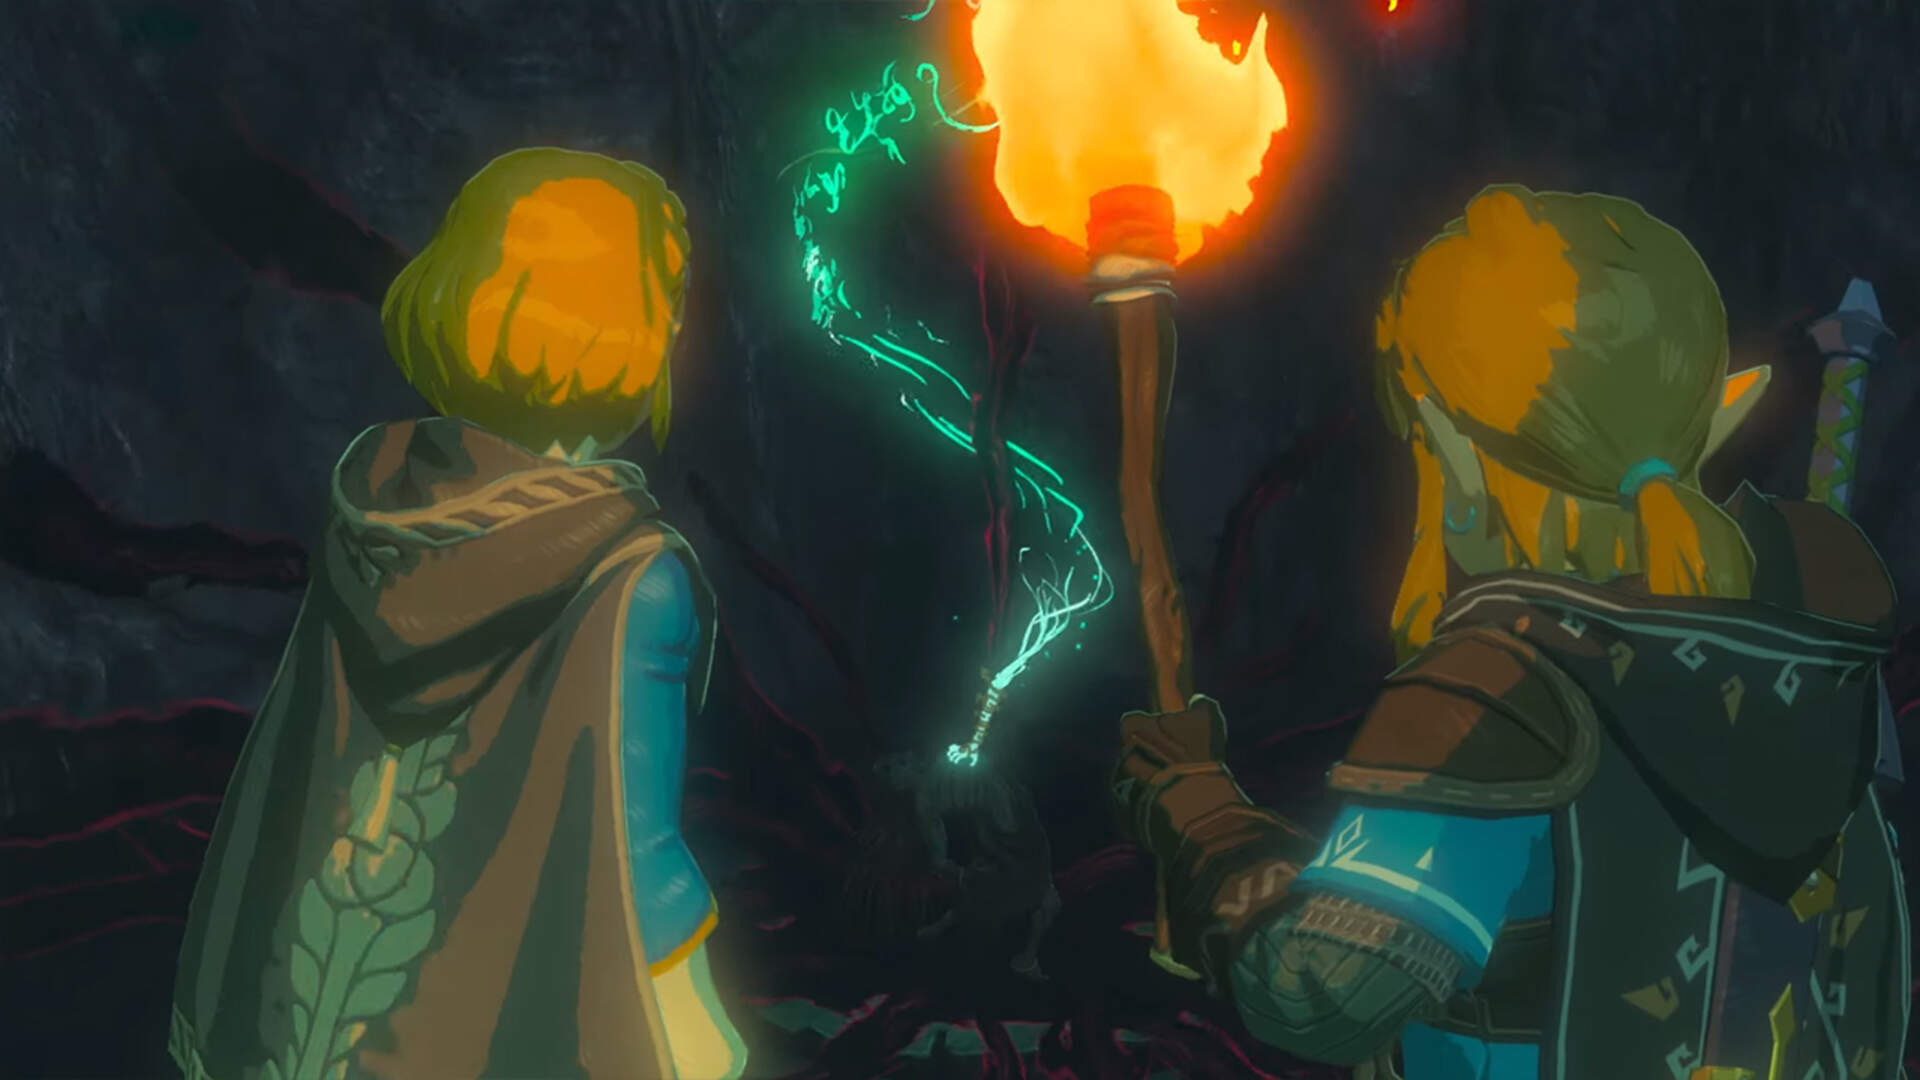 Mistranslated Breath of the Wild 2 Interview Gives Us Fleeting Hope, Then Rips Our Hearts in Half